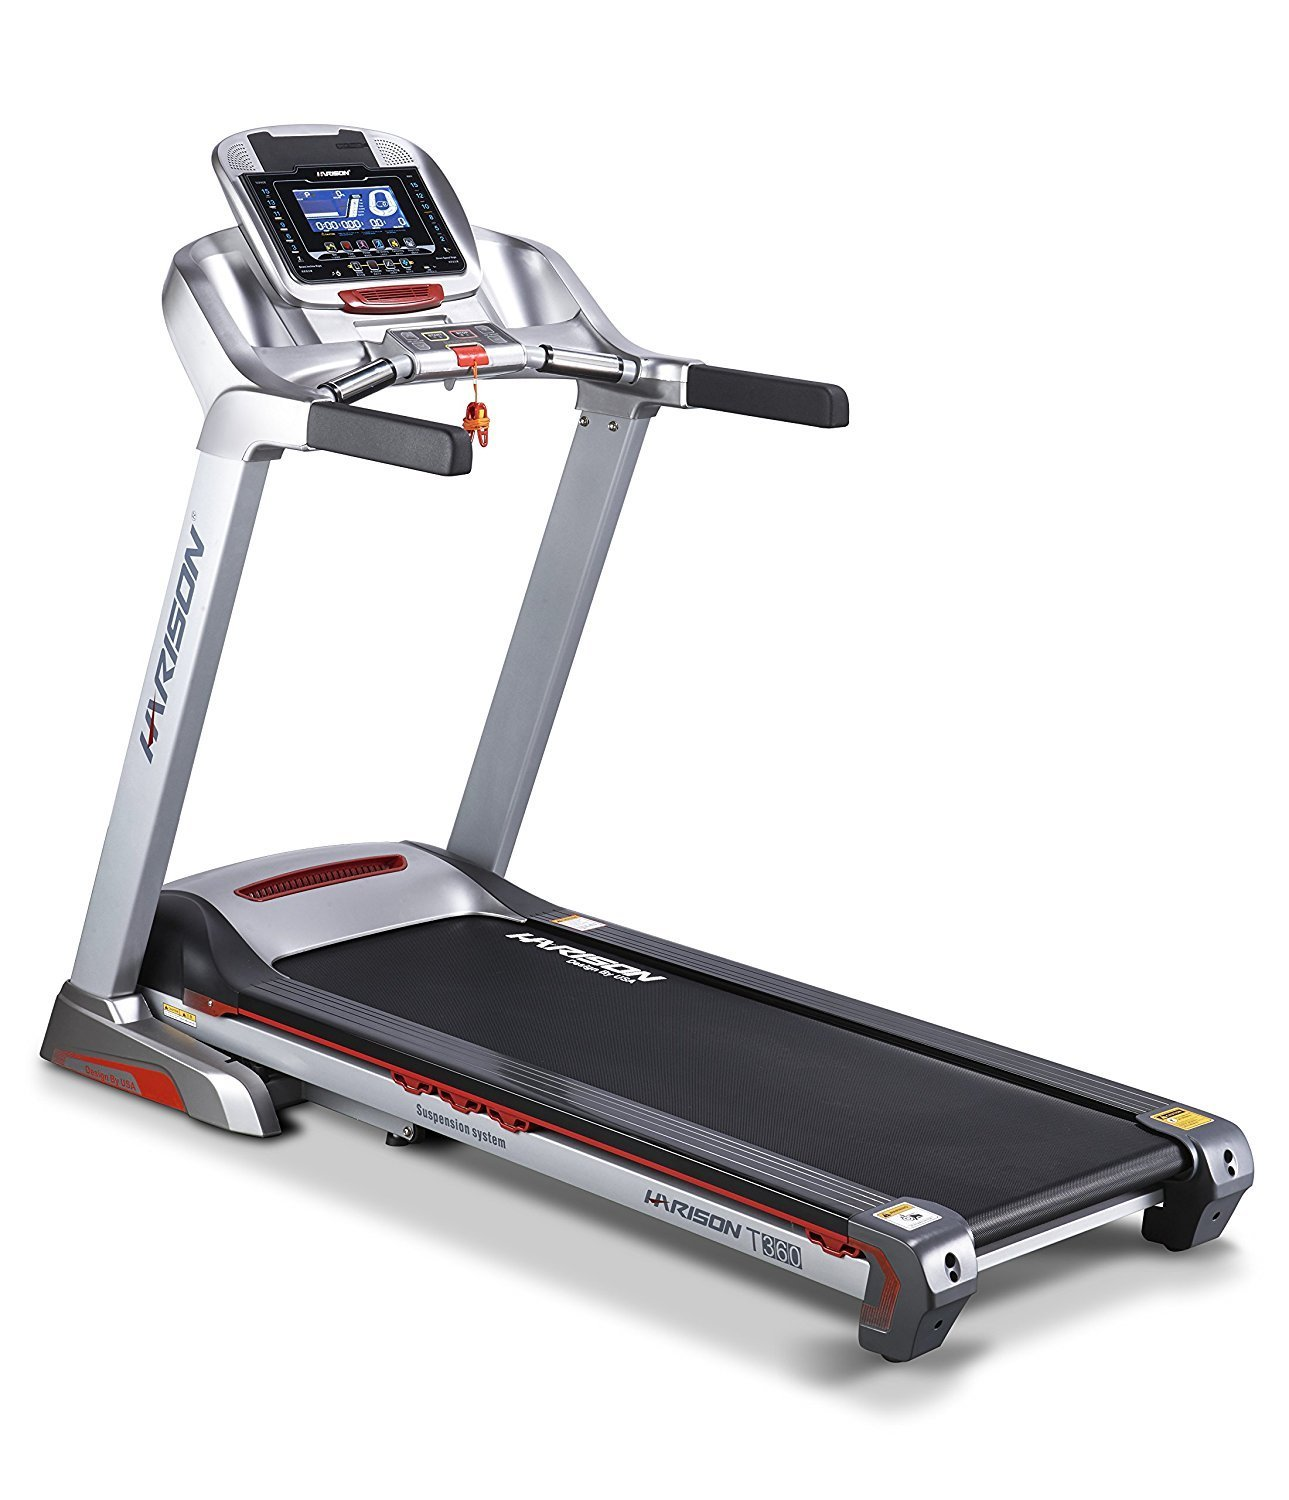 Treadmill Or Stationary Bike For Home Bicycling And The